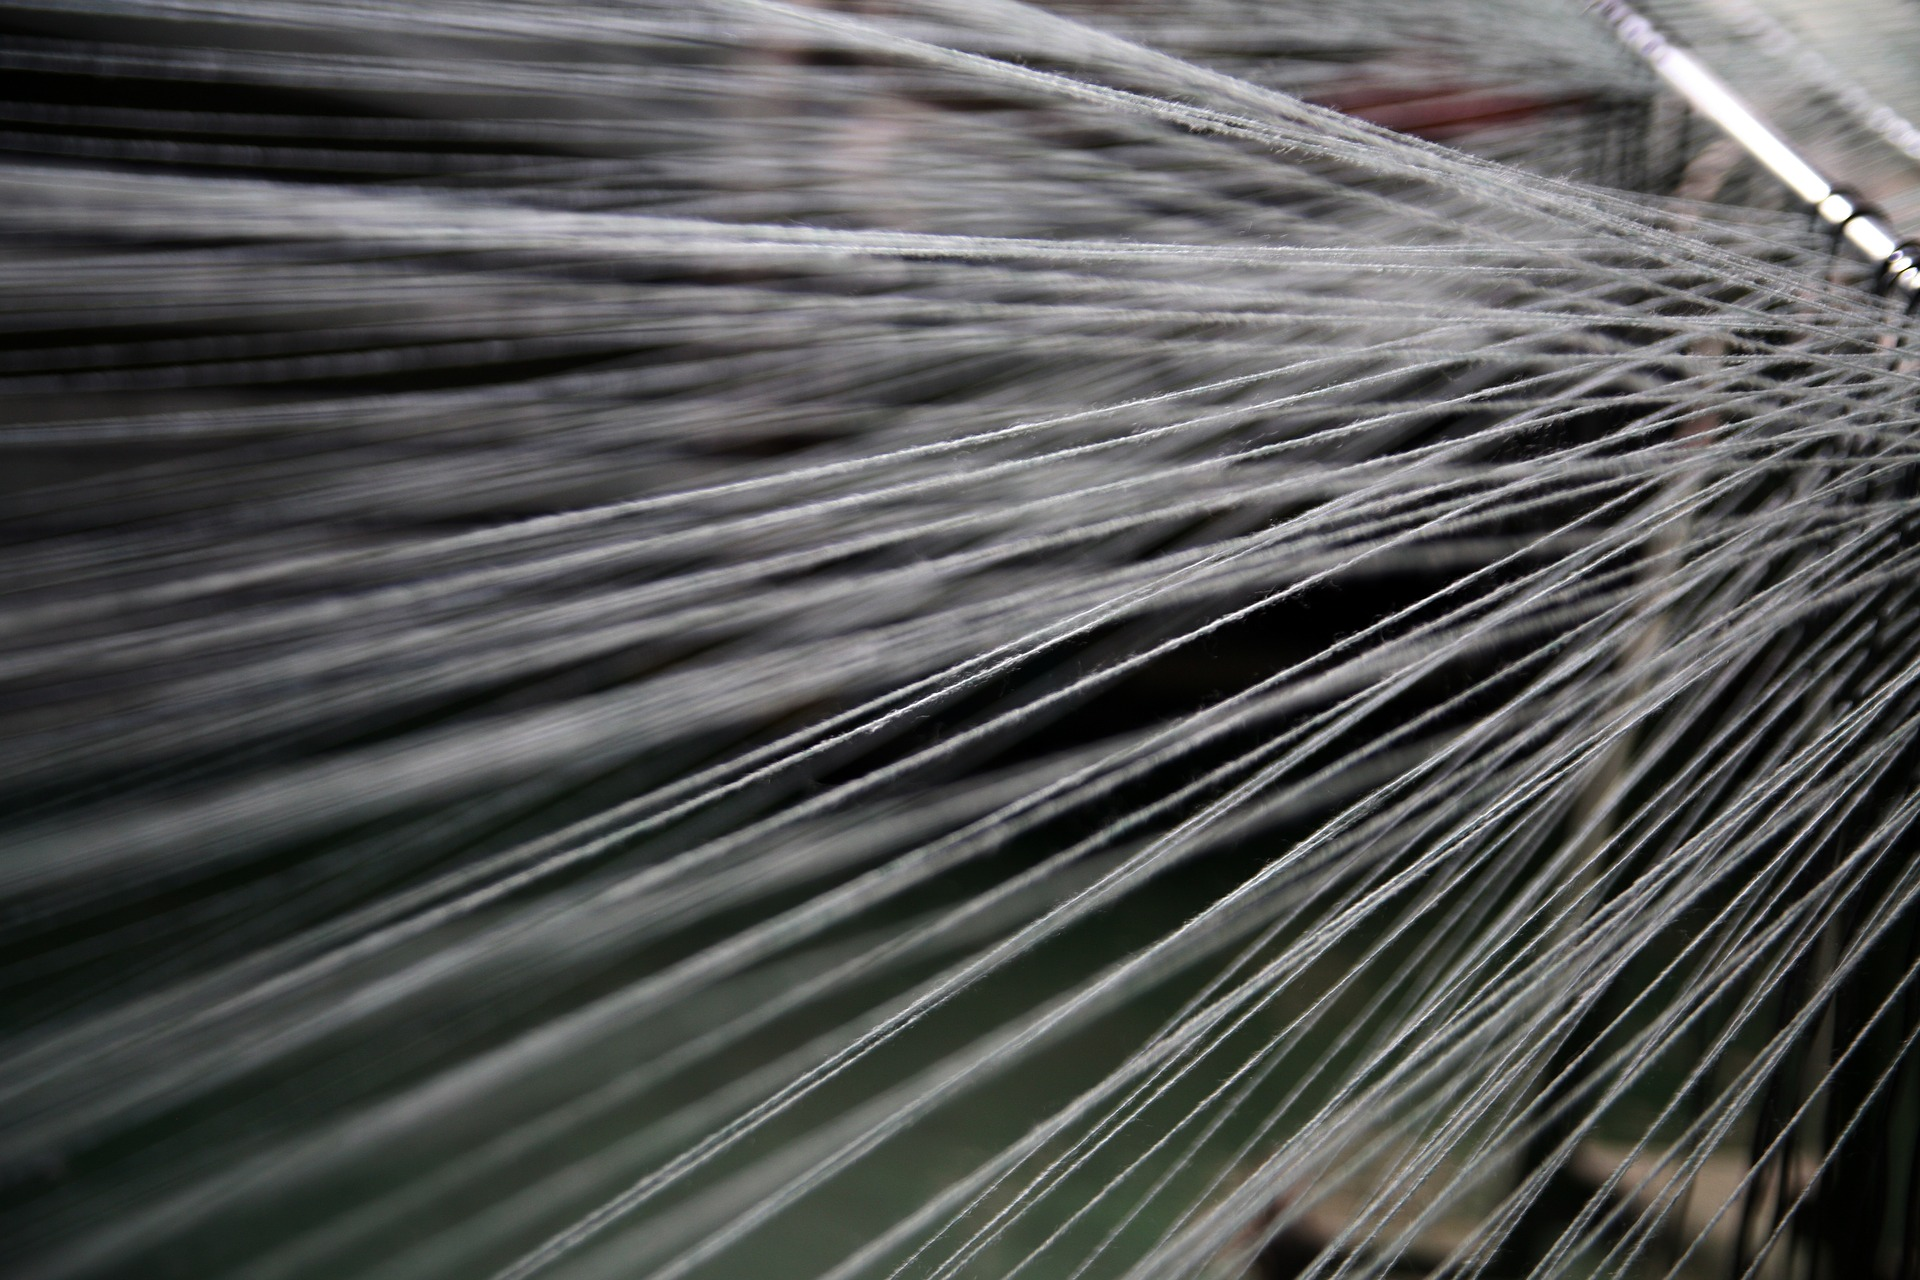 A photo of rug fibers being woven together